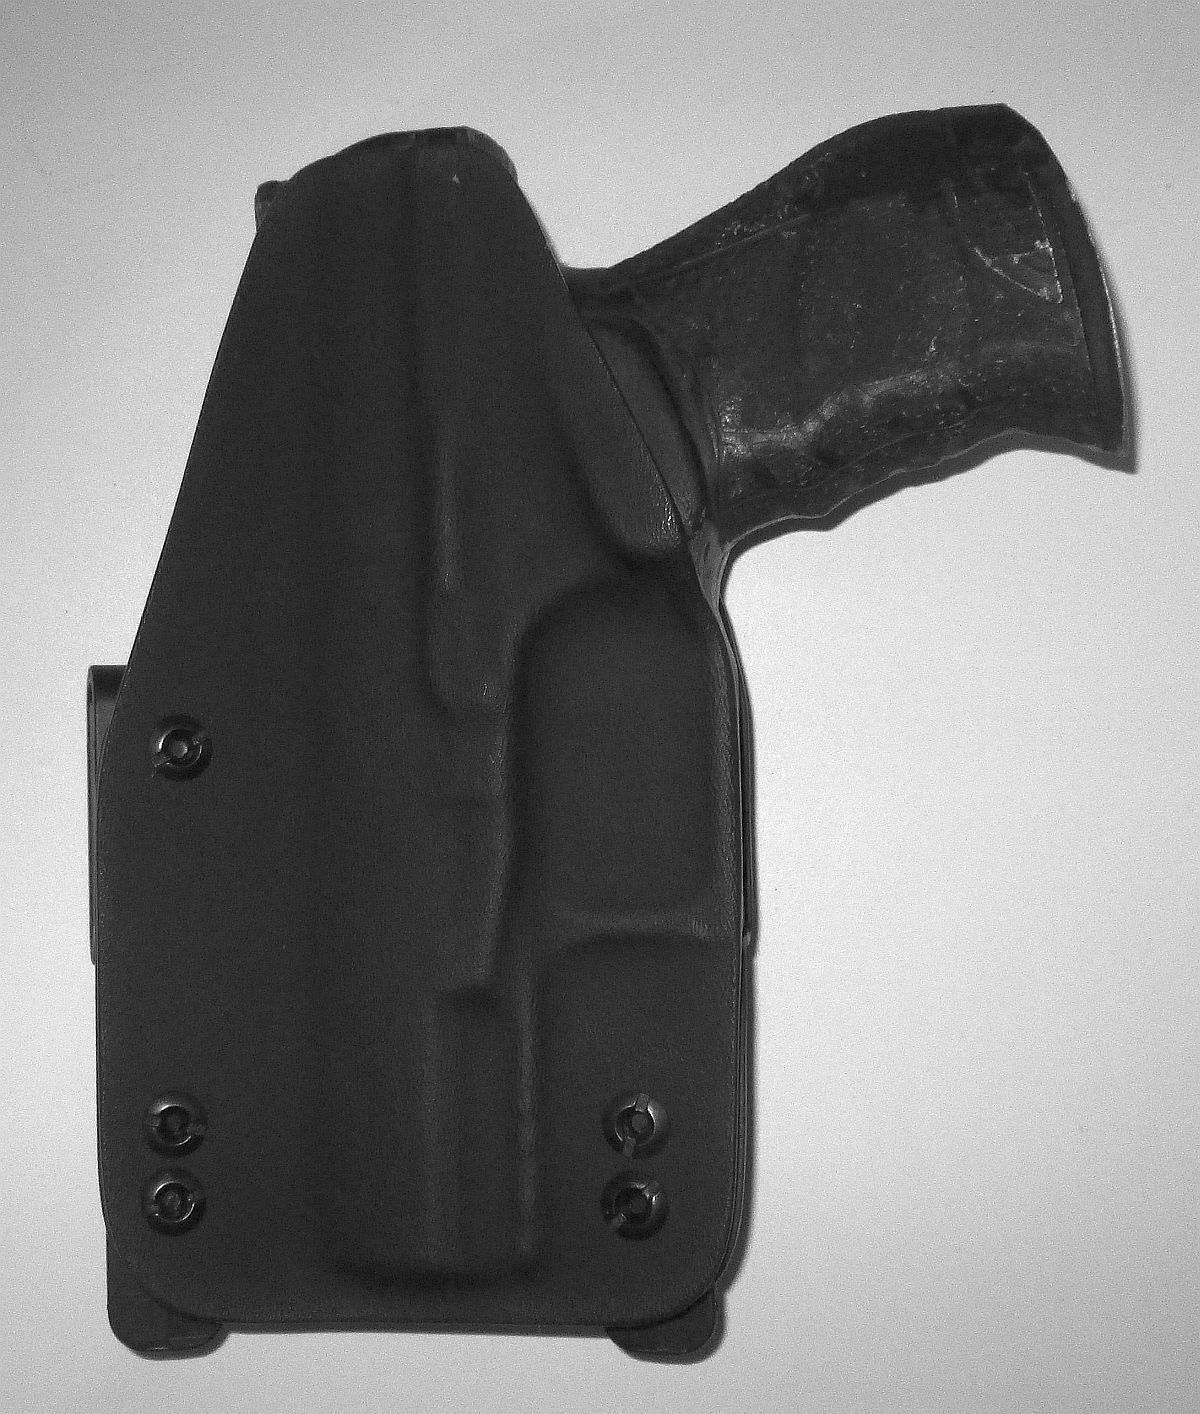 Hunt Ready PPQ Holsters: Walther PPQ Ready M2 9mm IWB Holster 733593